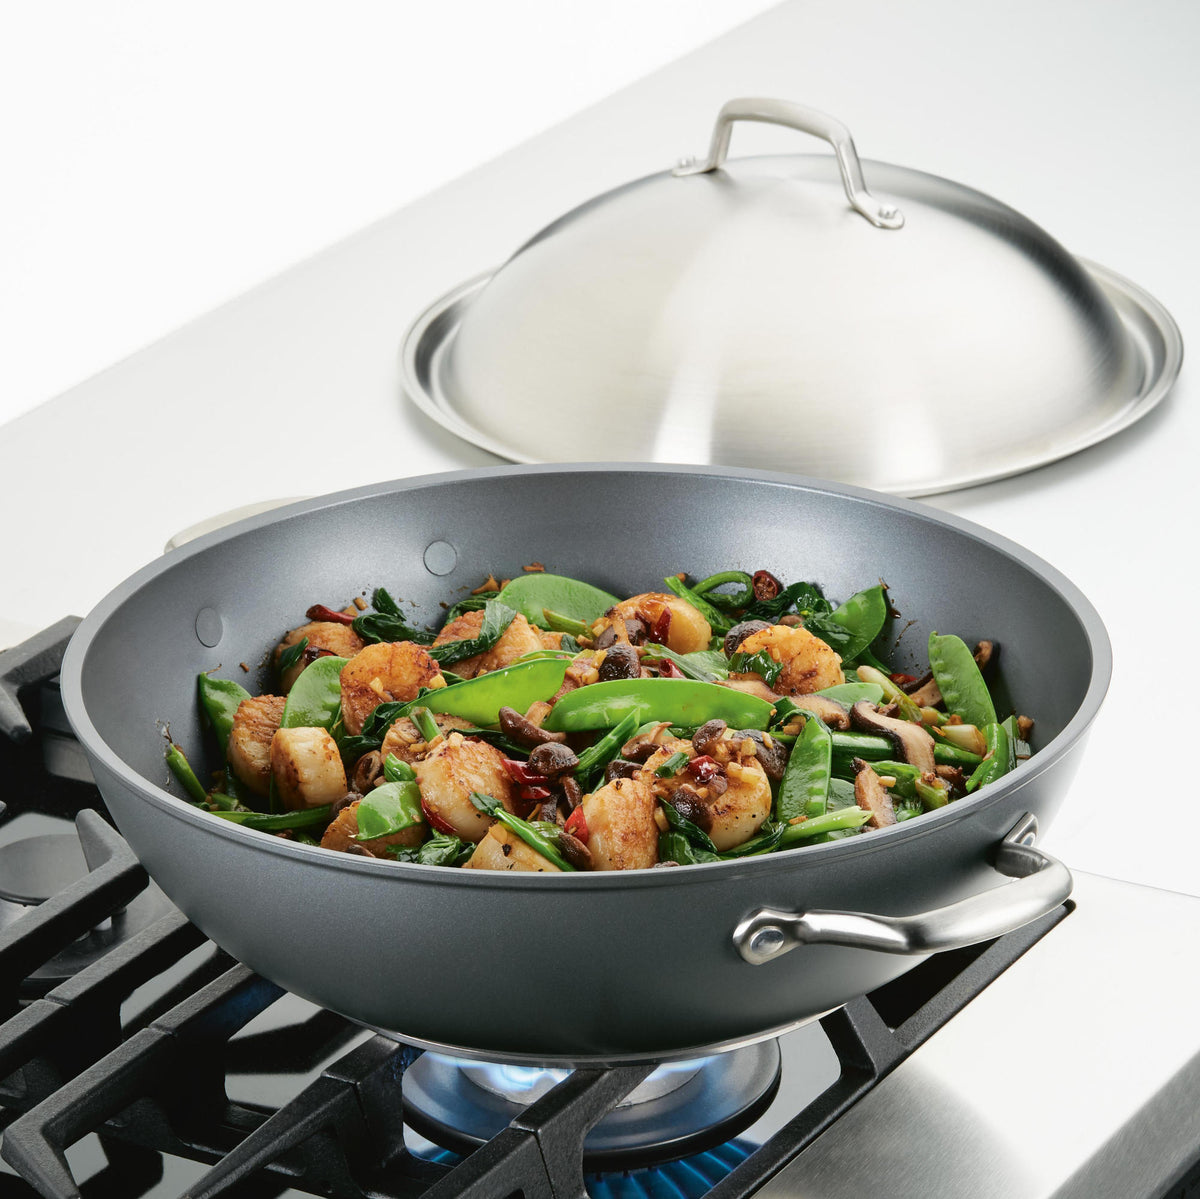 Accolade 13.5-Inch Wok with Lid